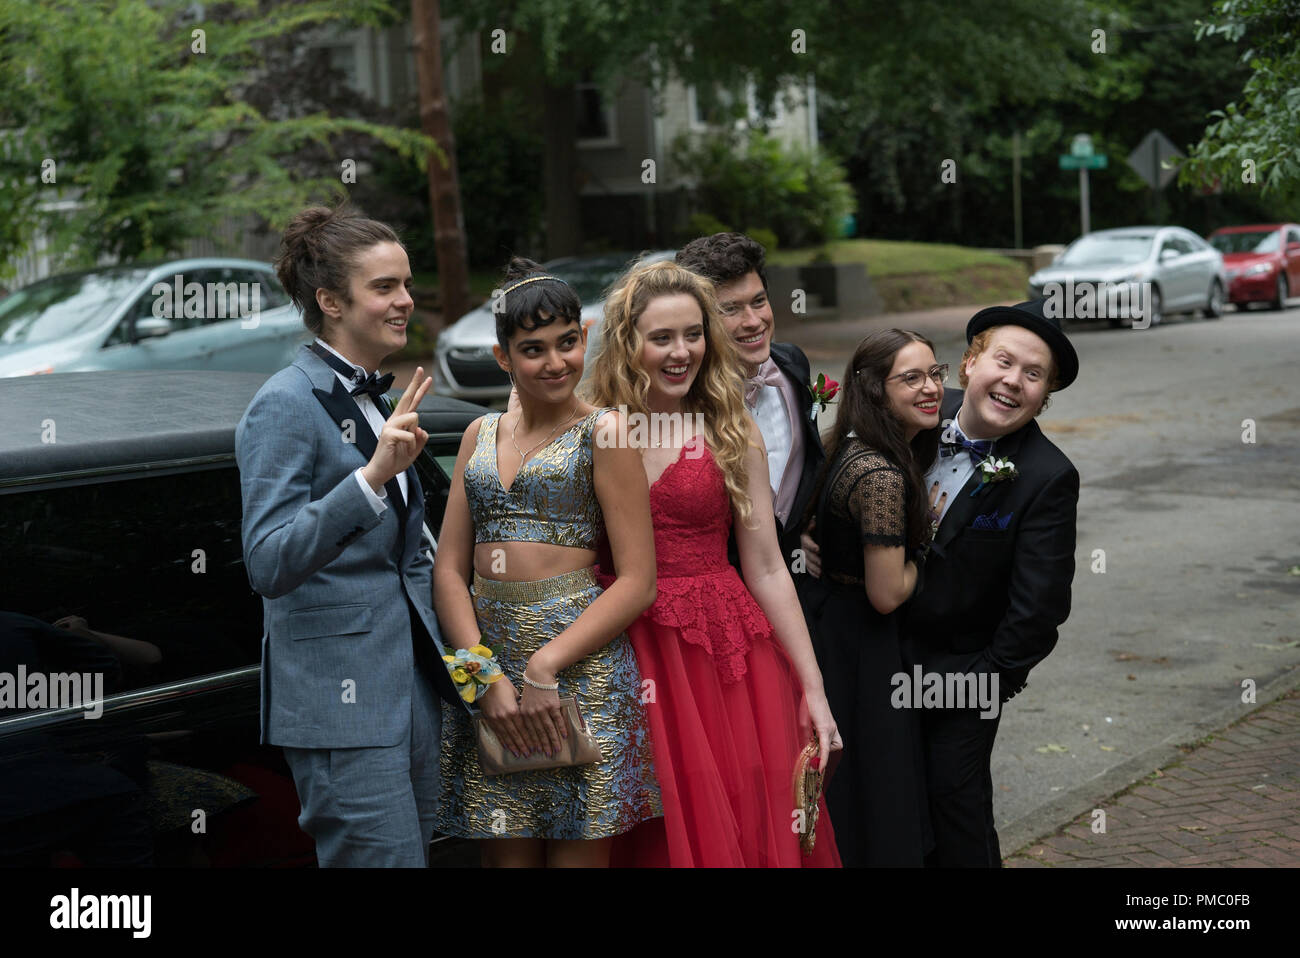 (L to R) Connor (MILES ROBBINS), Kayla (GERALDINE VISWANATHAN), Julie (KATHRYN NEWTON), Austin (GRAHAM PHILLIPS), Sam (GIDEON ADLON) and Chad (JIMMY BELLINGER) in 'Blockers,' the directorial debut of Kay Cannon (writer of the 'Pitch Perfect' series).  When three parents discover their daughters' pact to lose their virginity at prom, they launch a covert one-night operation to stop the teens from sealing the deal. 2018 Universal Studios - Stock Image